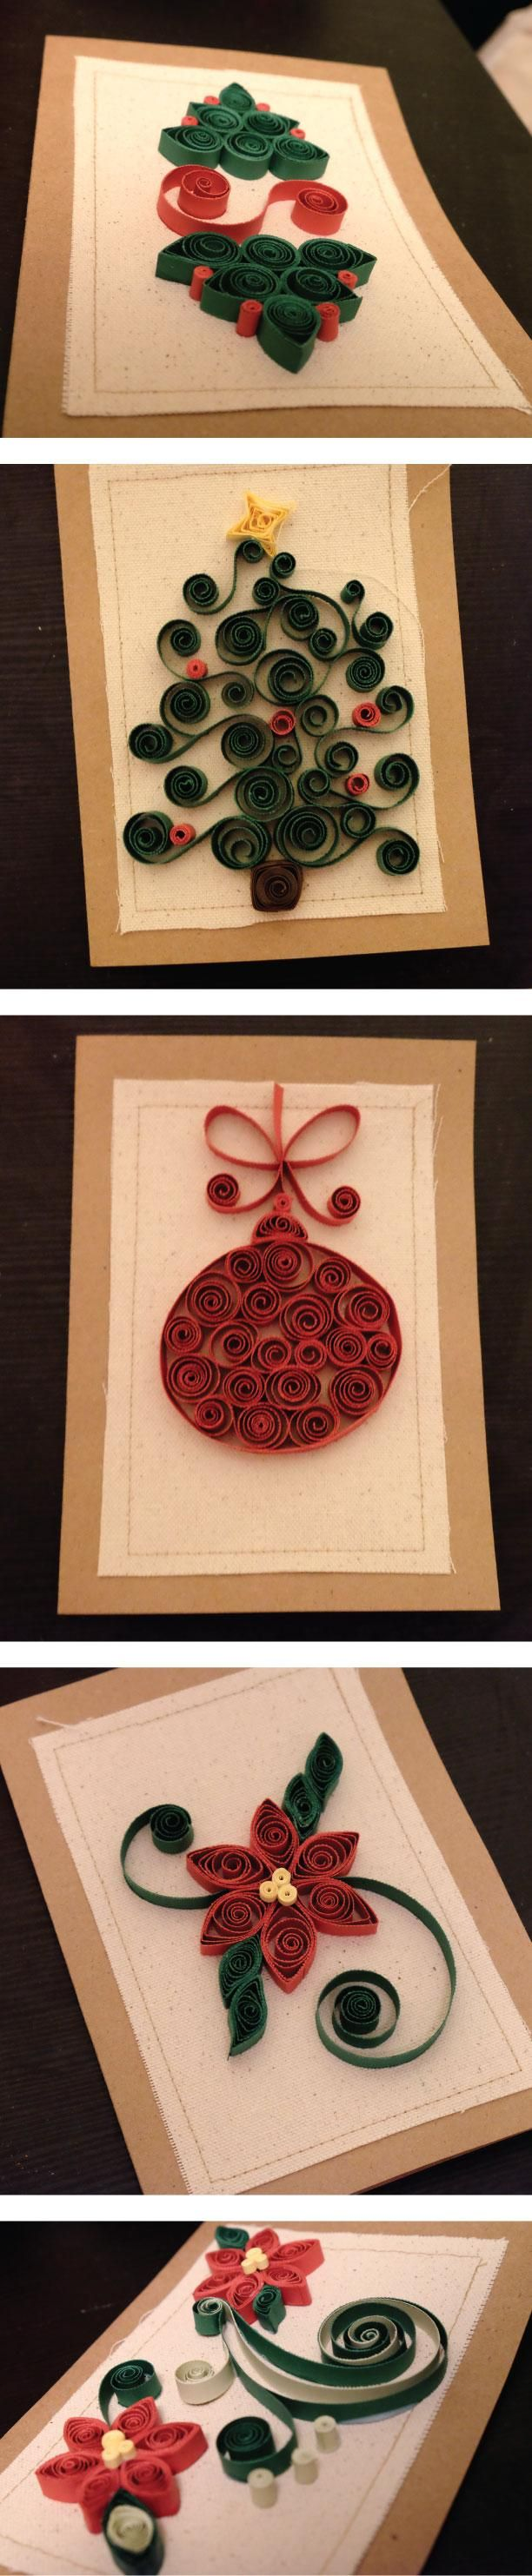 Quilled Christmas cards - image 1 - student project